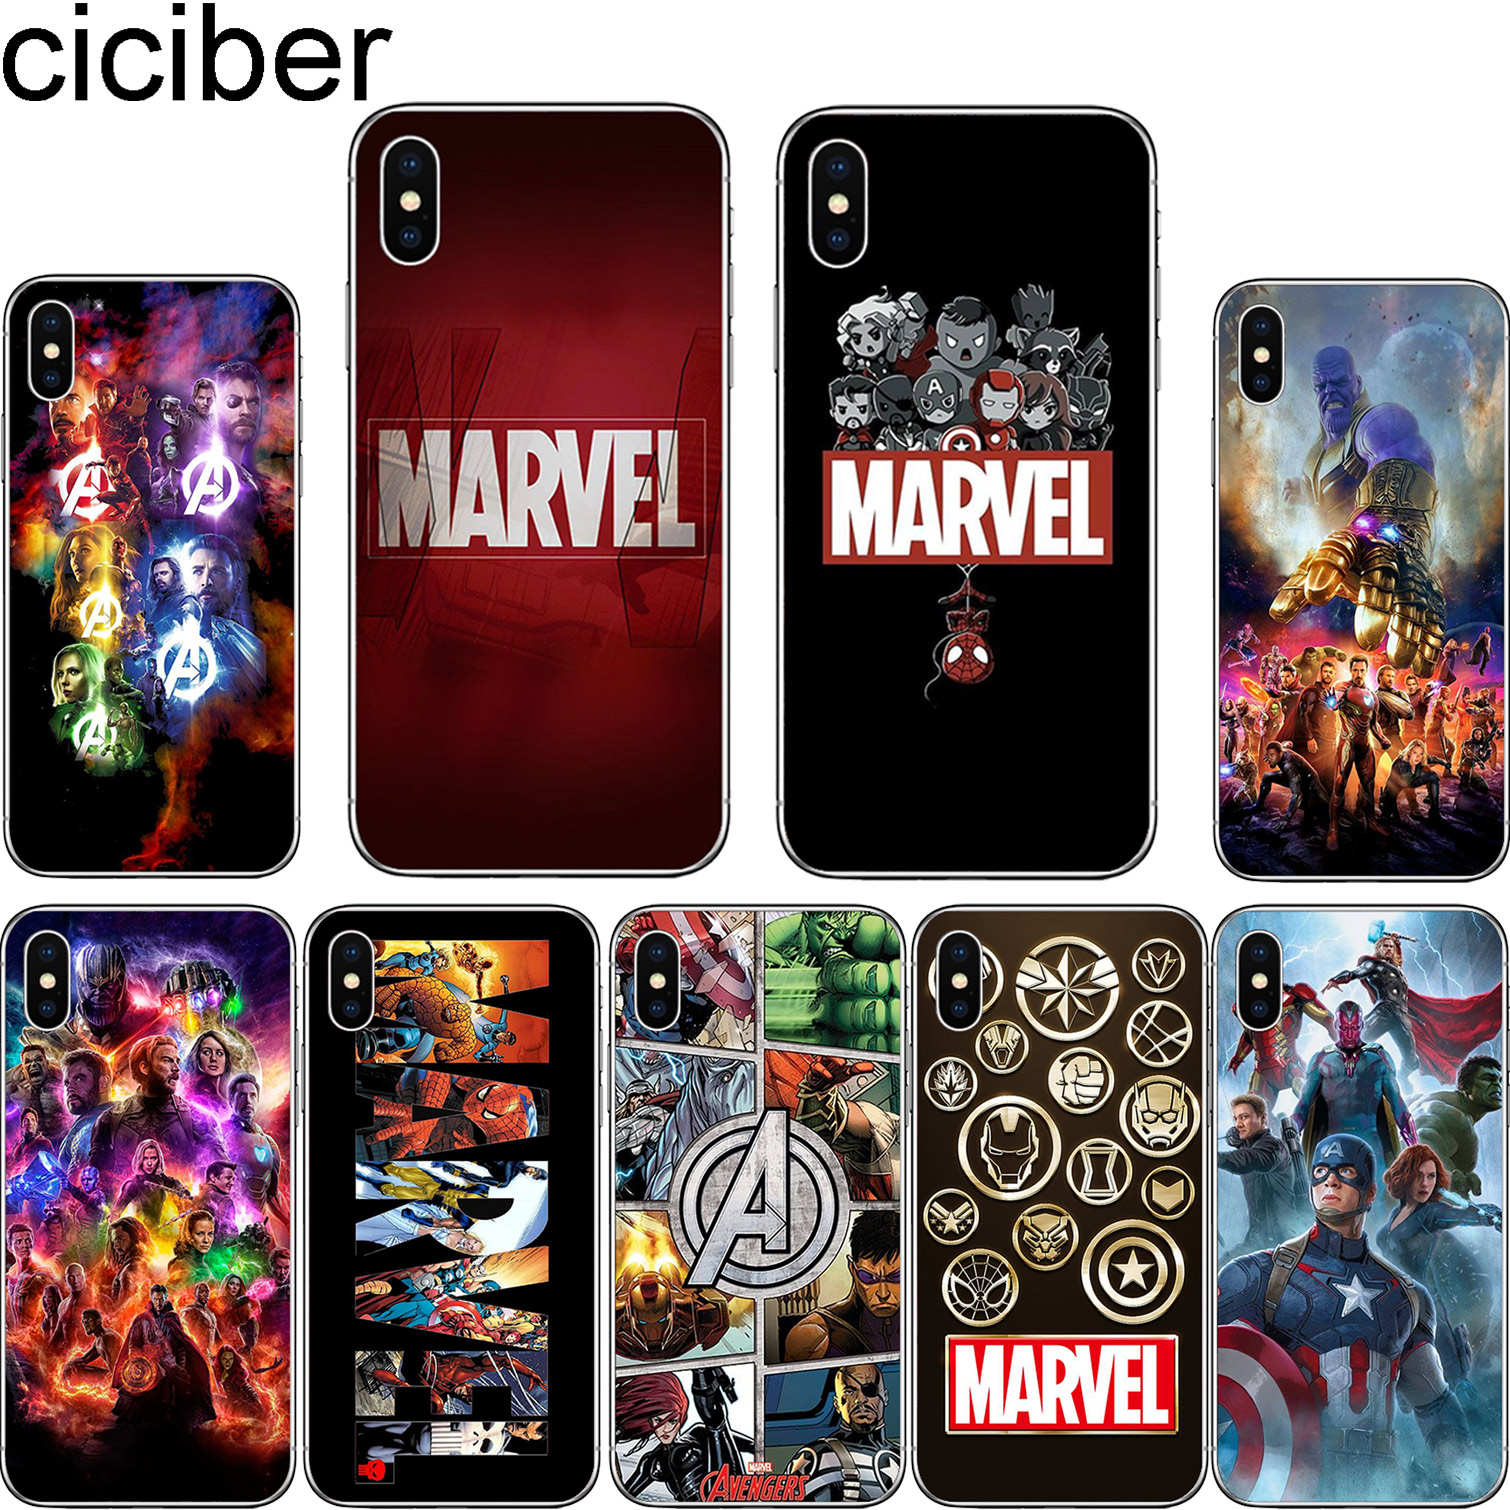 cicibers-the-font-b-avengers-b-font-coque-phone-cases-for-iphone-7-8-6-s-plus-5s-se-for-iphone-x-xr-xs-max-soft-silicone-cover-marvel-iron-man